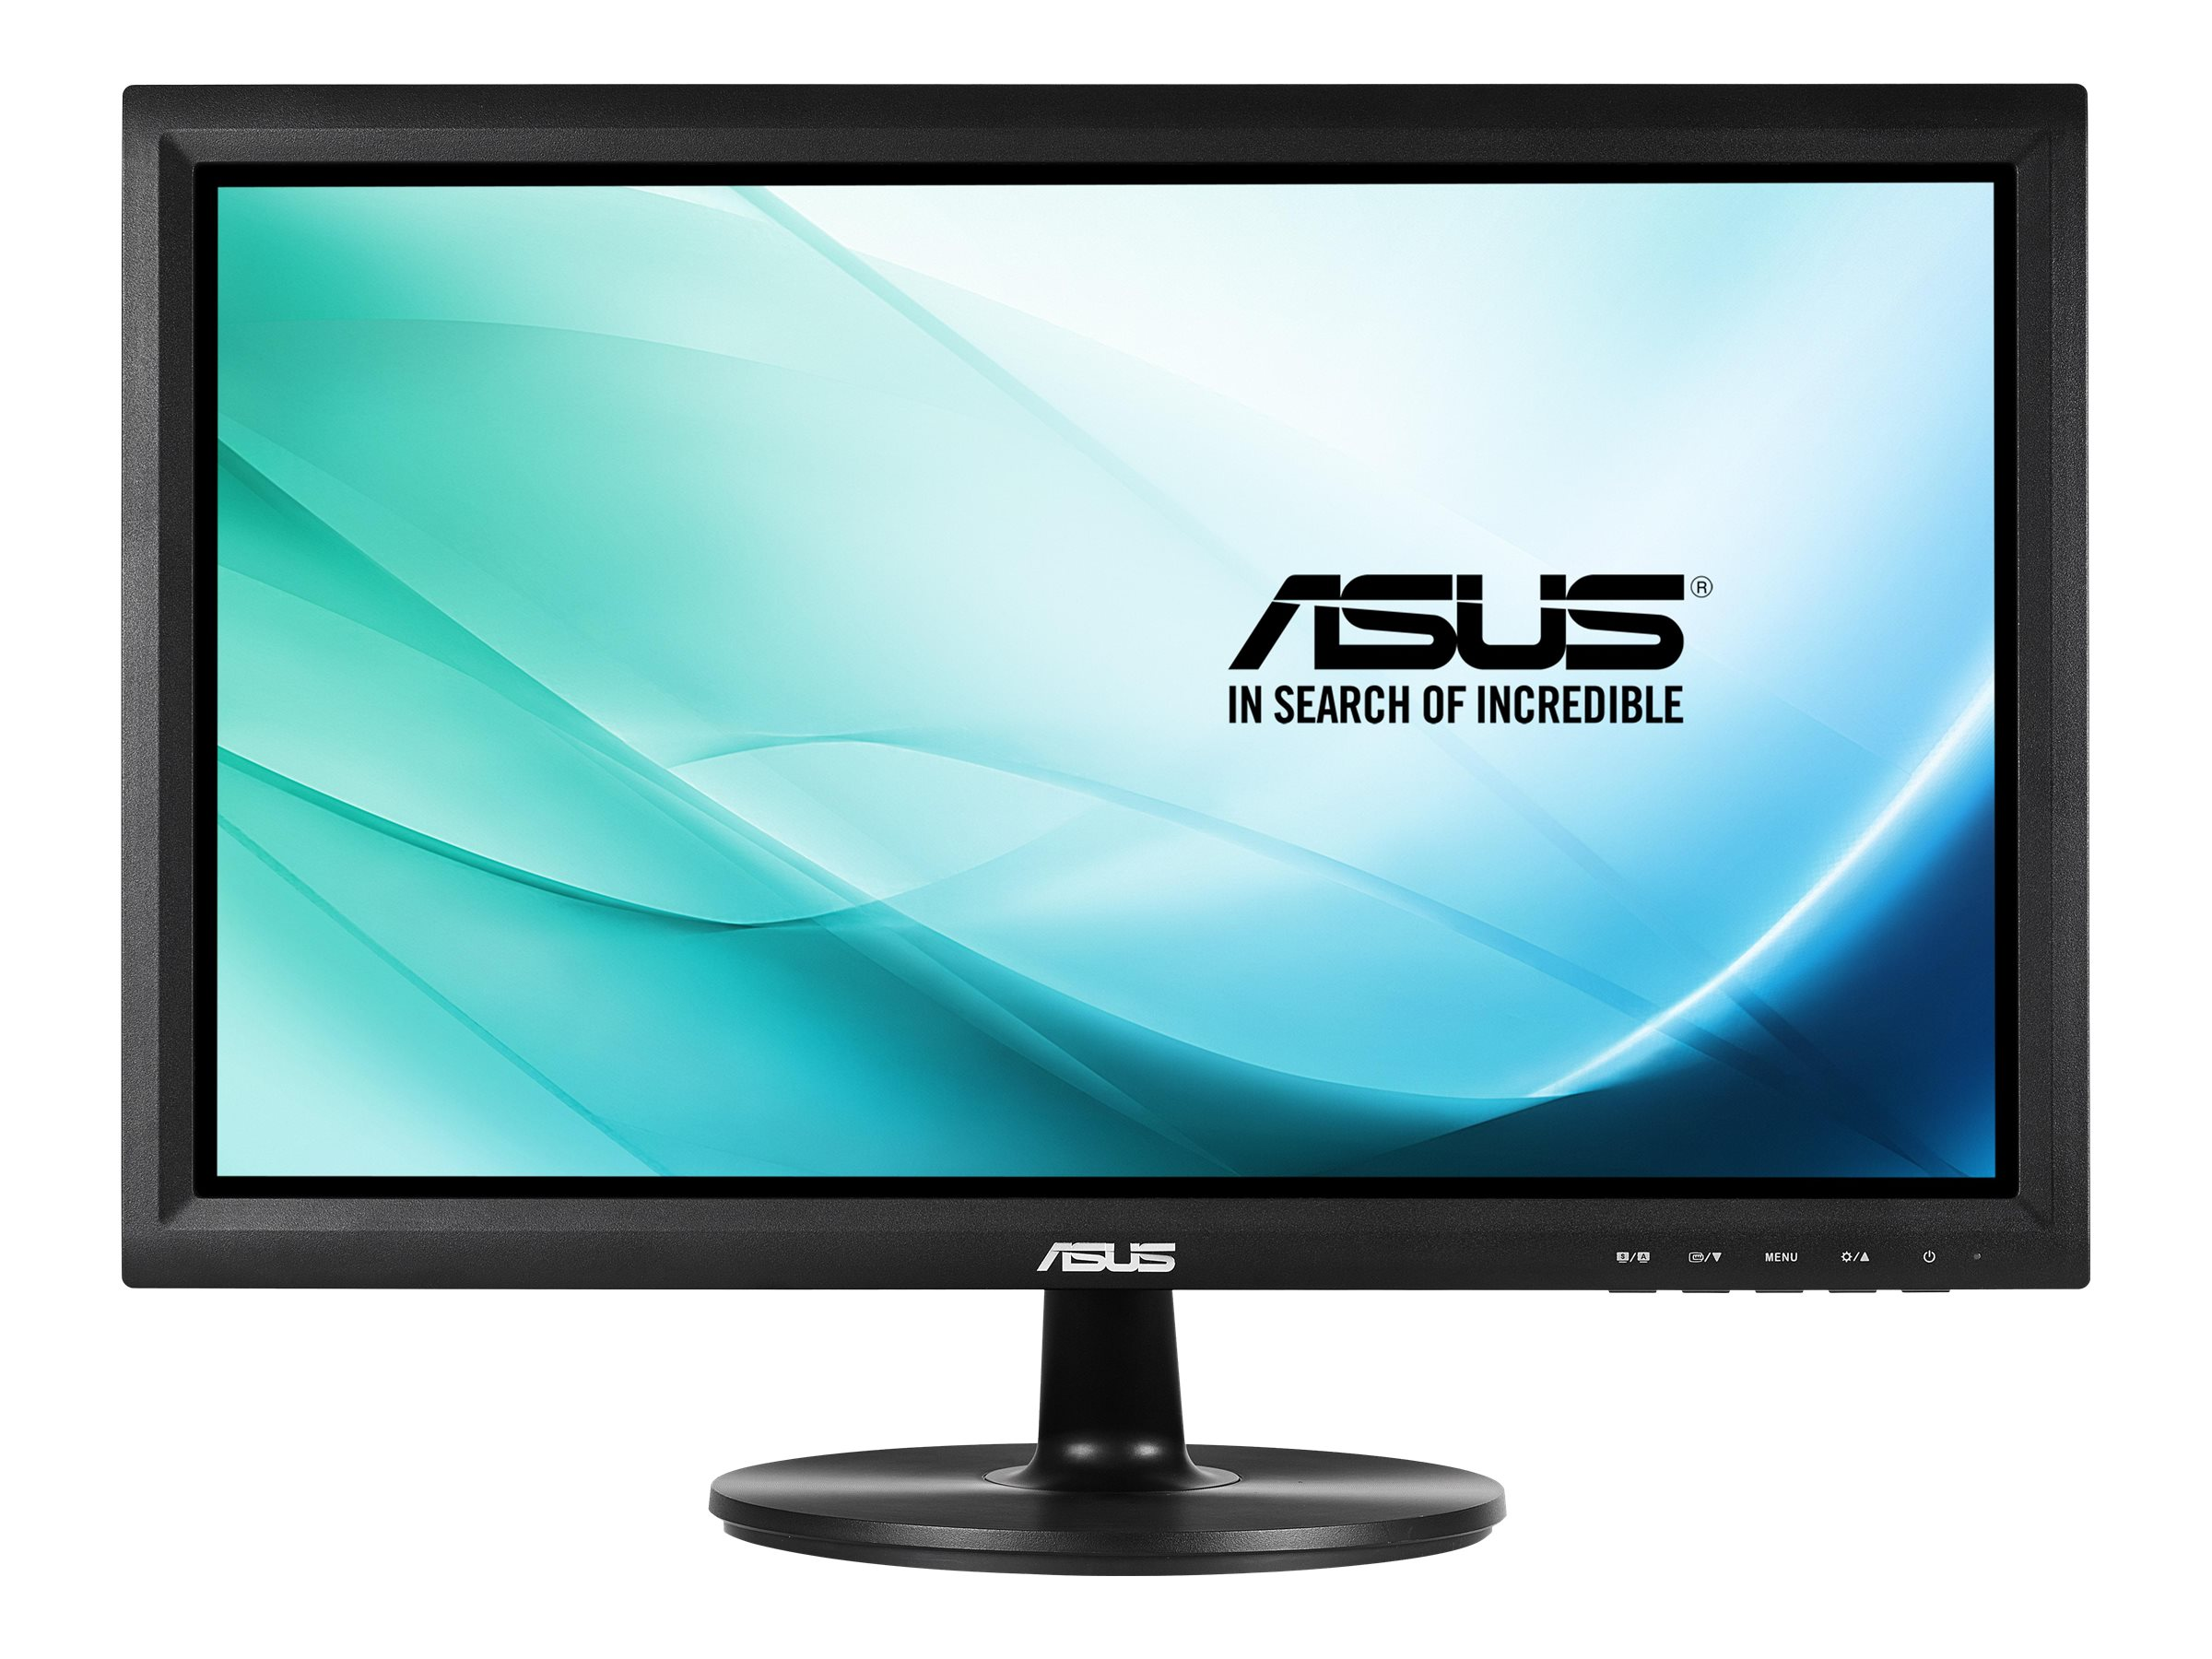 Asus 19.5 VT207N LED-LCD Touchscreen Monitor, Black